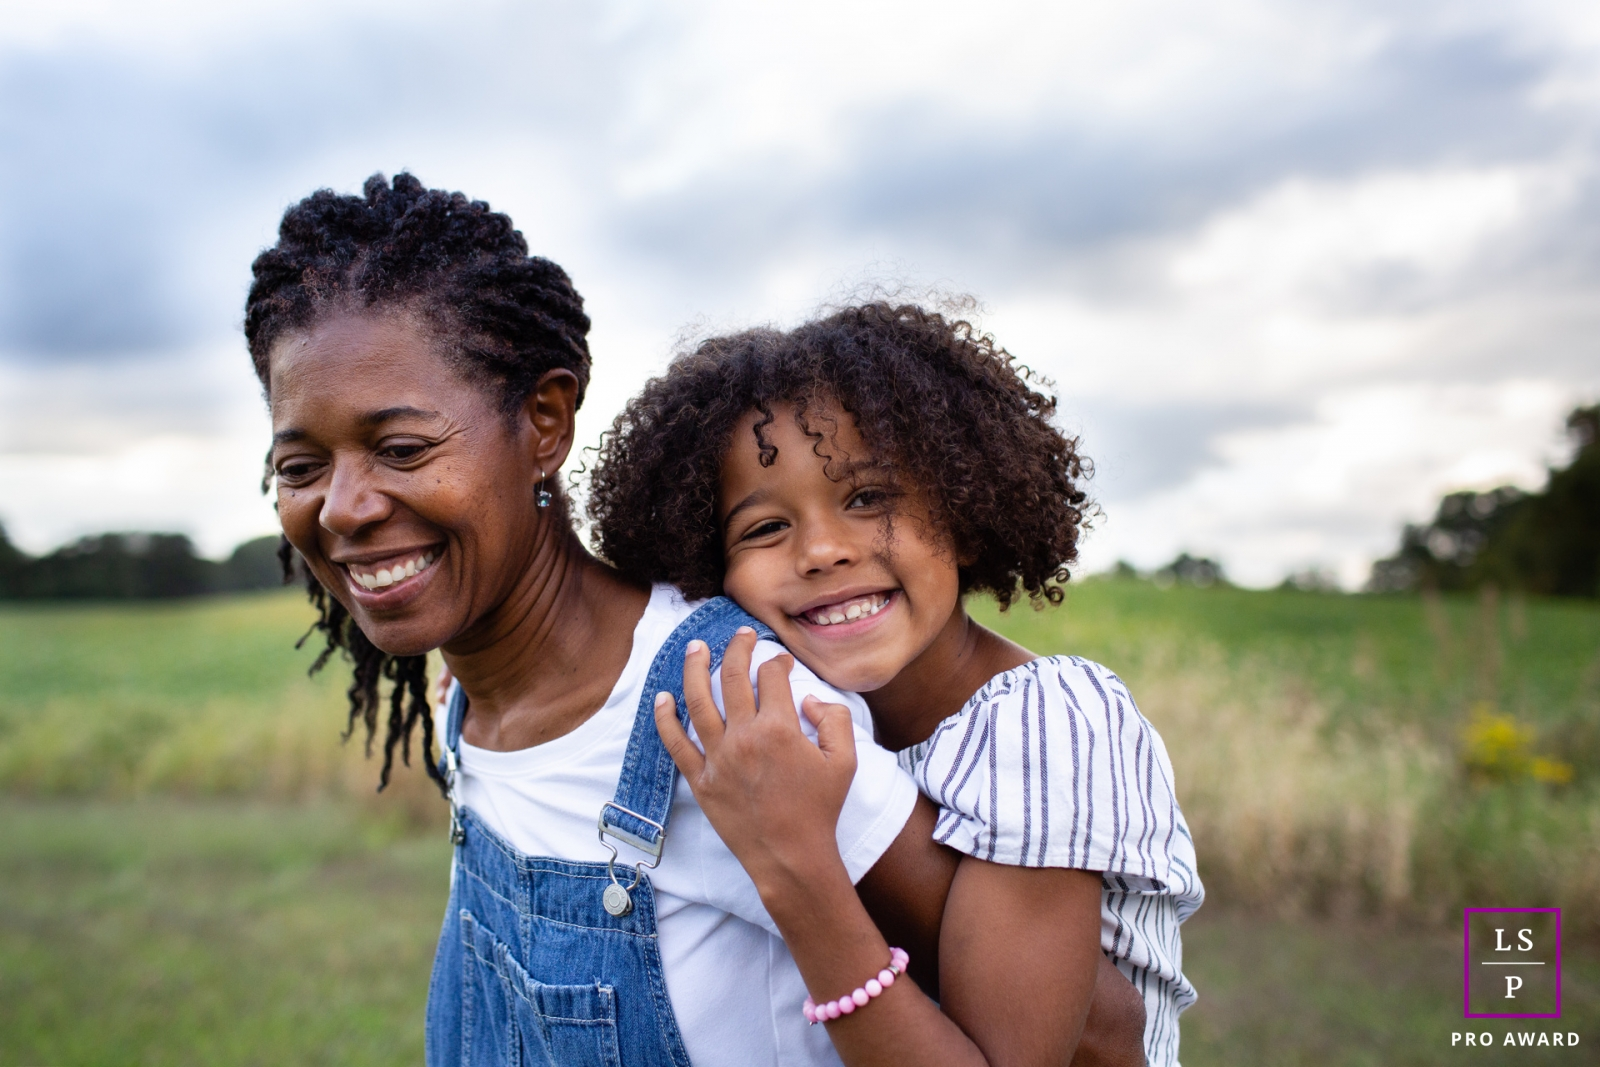 New York - Long Island mother and daughter portrait shoot in the fields